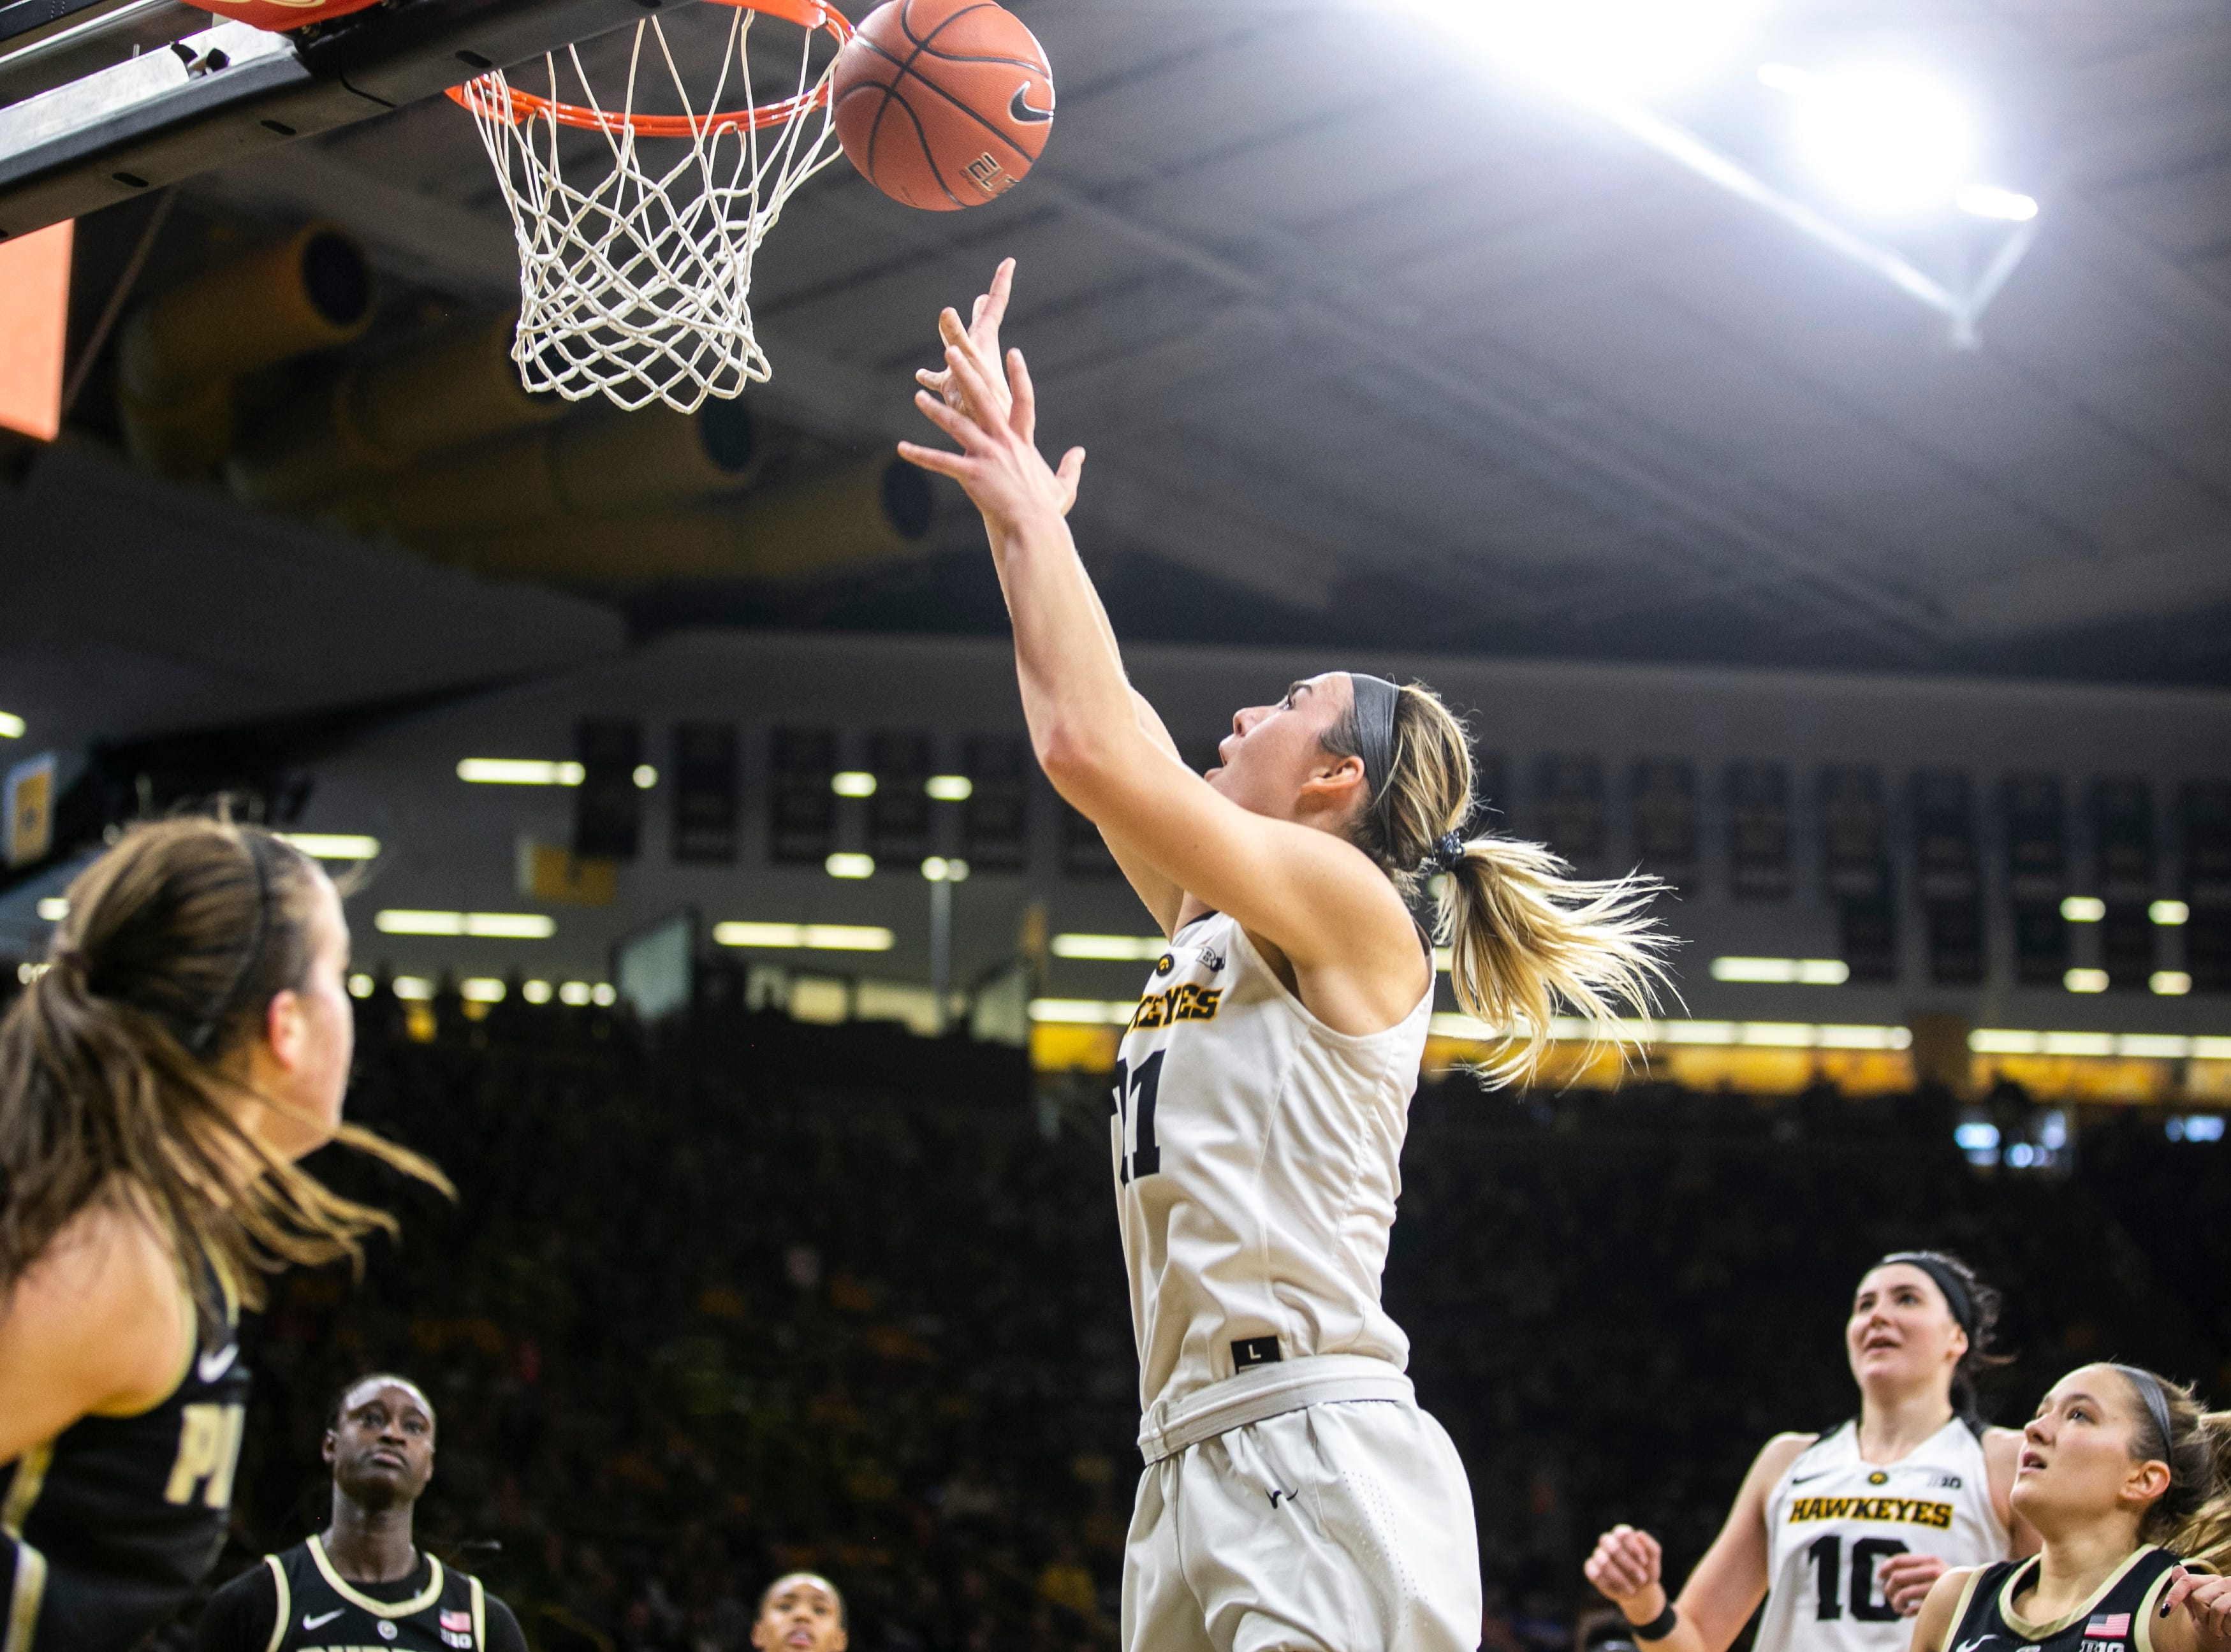 Iowa forward Hannah Stewart (21) makes a basket during a NCAA Big Ten Conference women's basketball game on Sunday, Jan. 27, 2019, at Carver-Hawkeye Arena in Iowa City, Iowa.